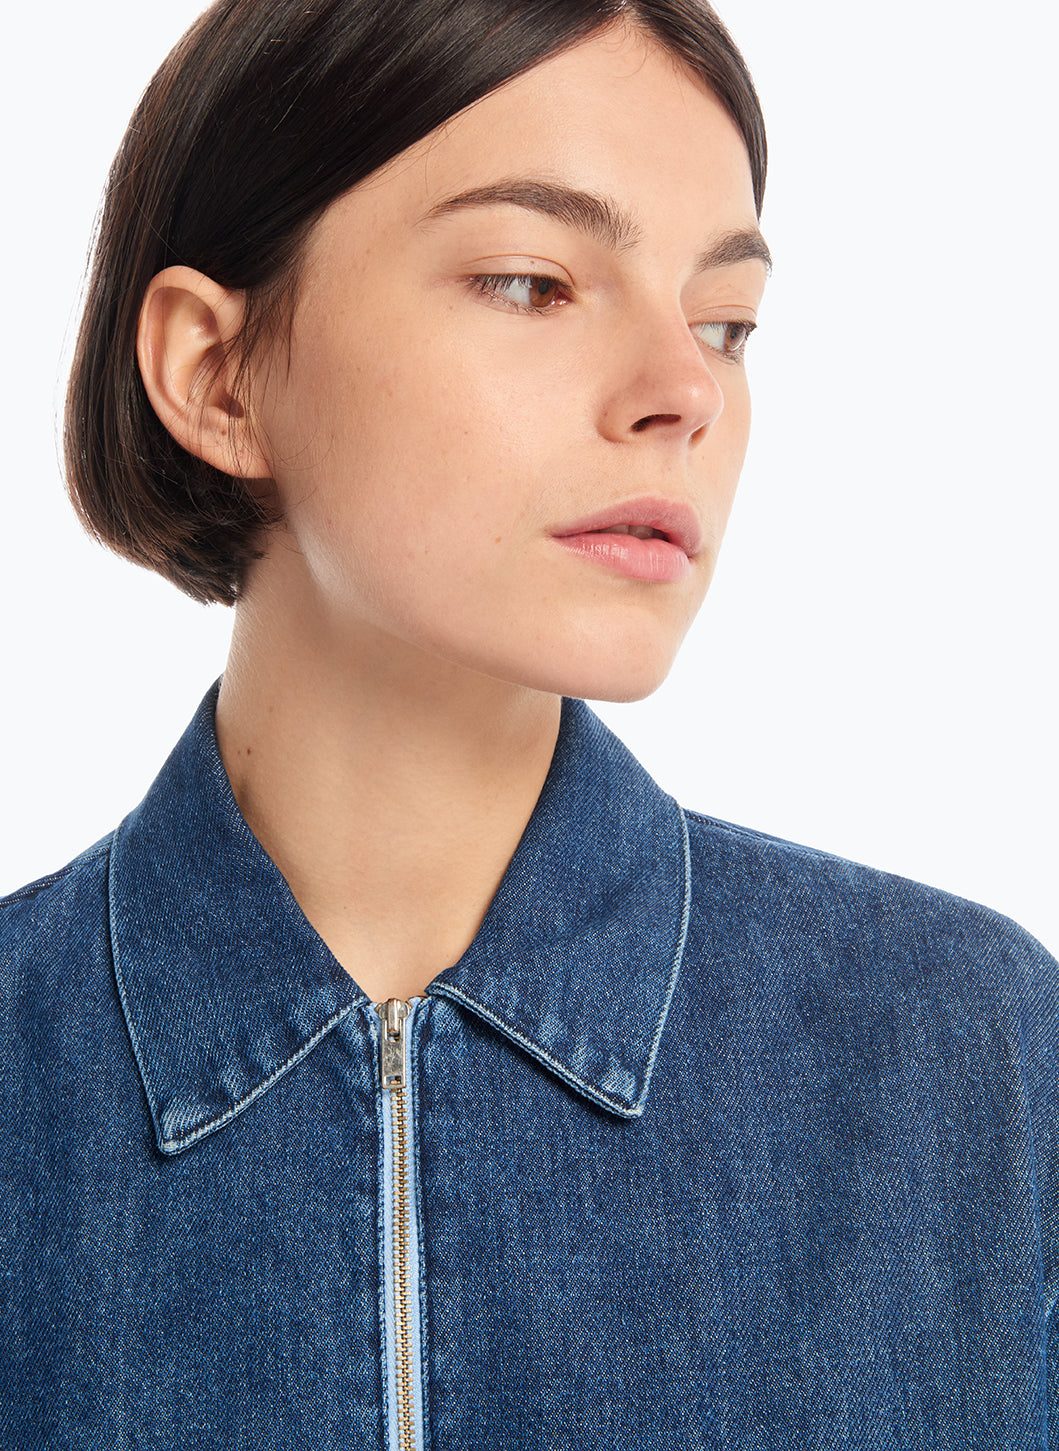 Poloshirt with Stitched Pockets in Stoned Denim